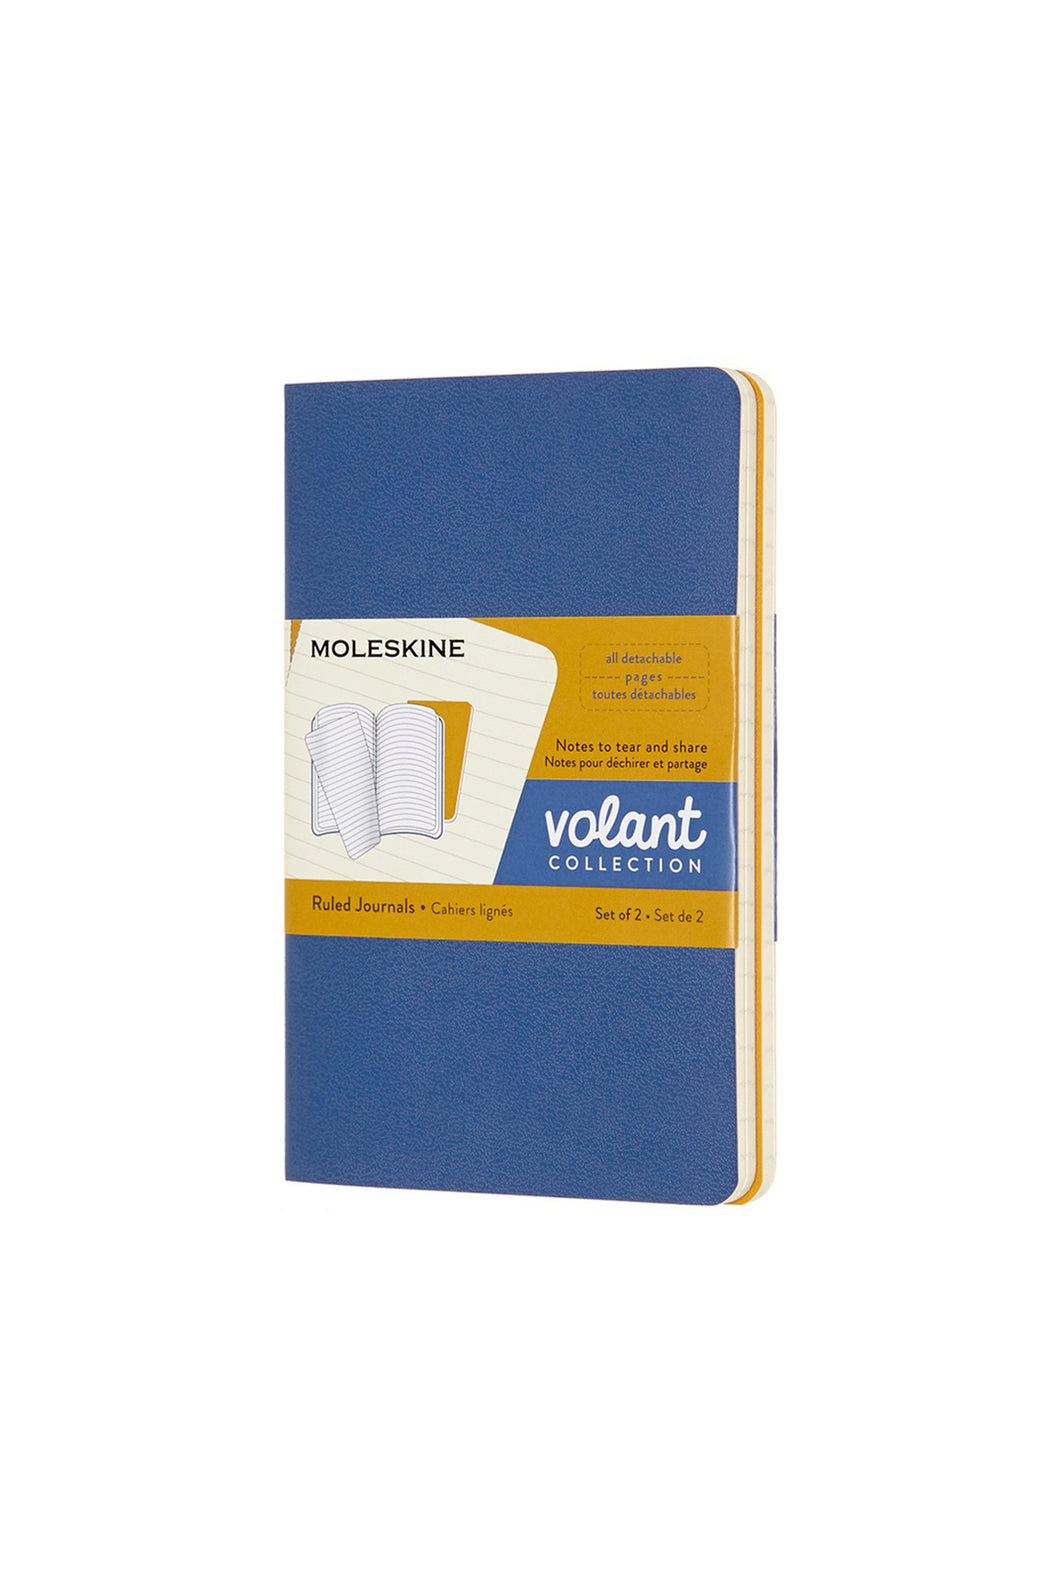 Moleskine - Volant Notebook - Ruled - Pocket (9x14cm) - Forget Me Not Blue & Amber Yellow